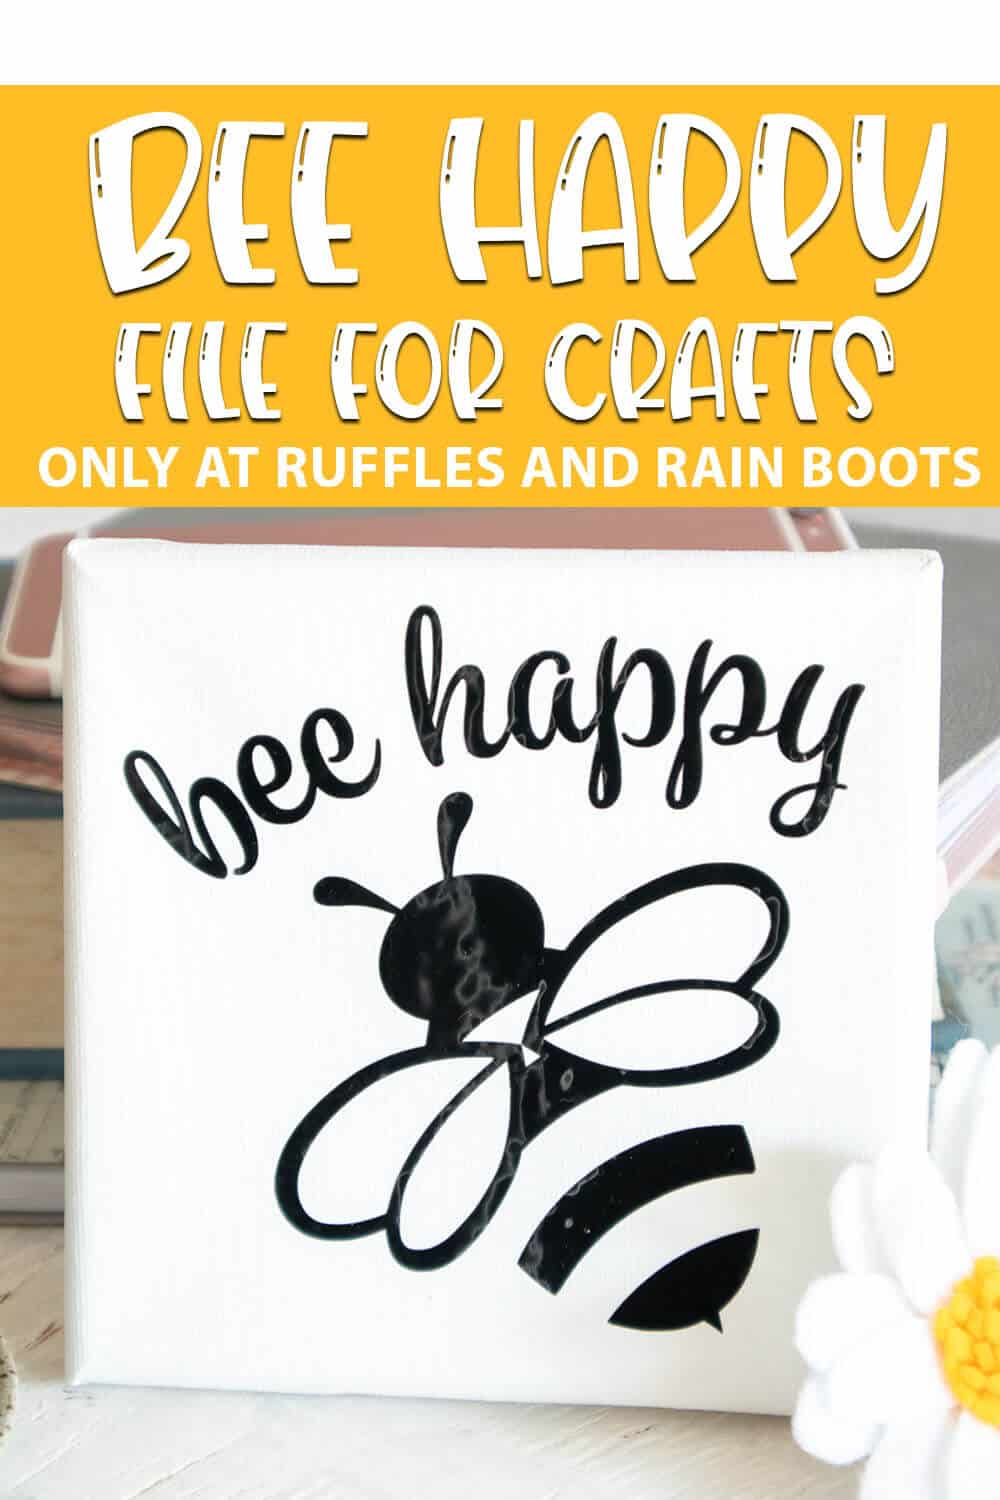 bee mini-canvas art cut file For cricut joy or other cutting machines with text which reads bee happy file for crafts